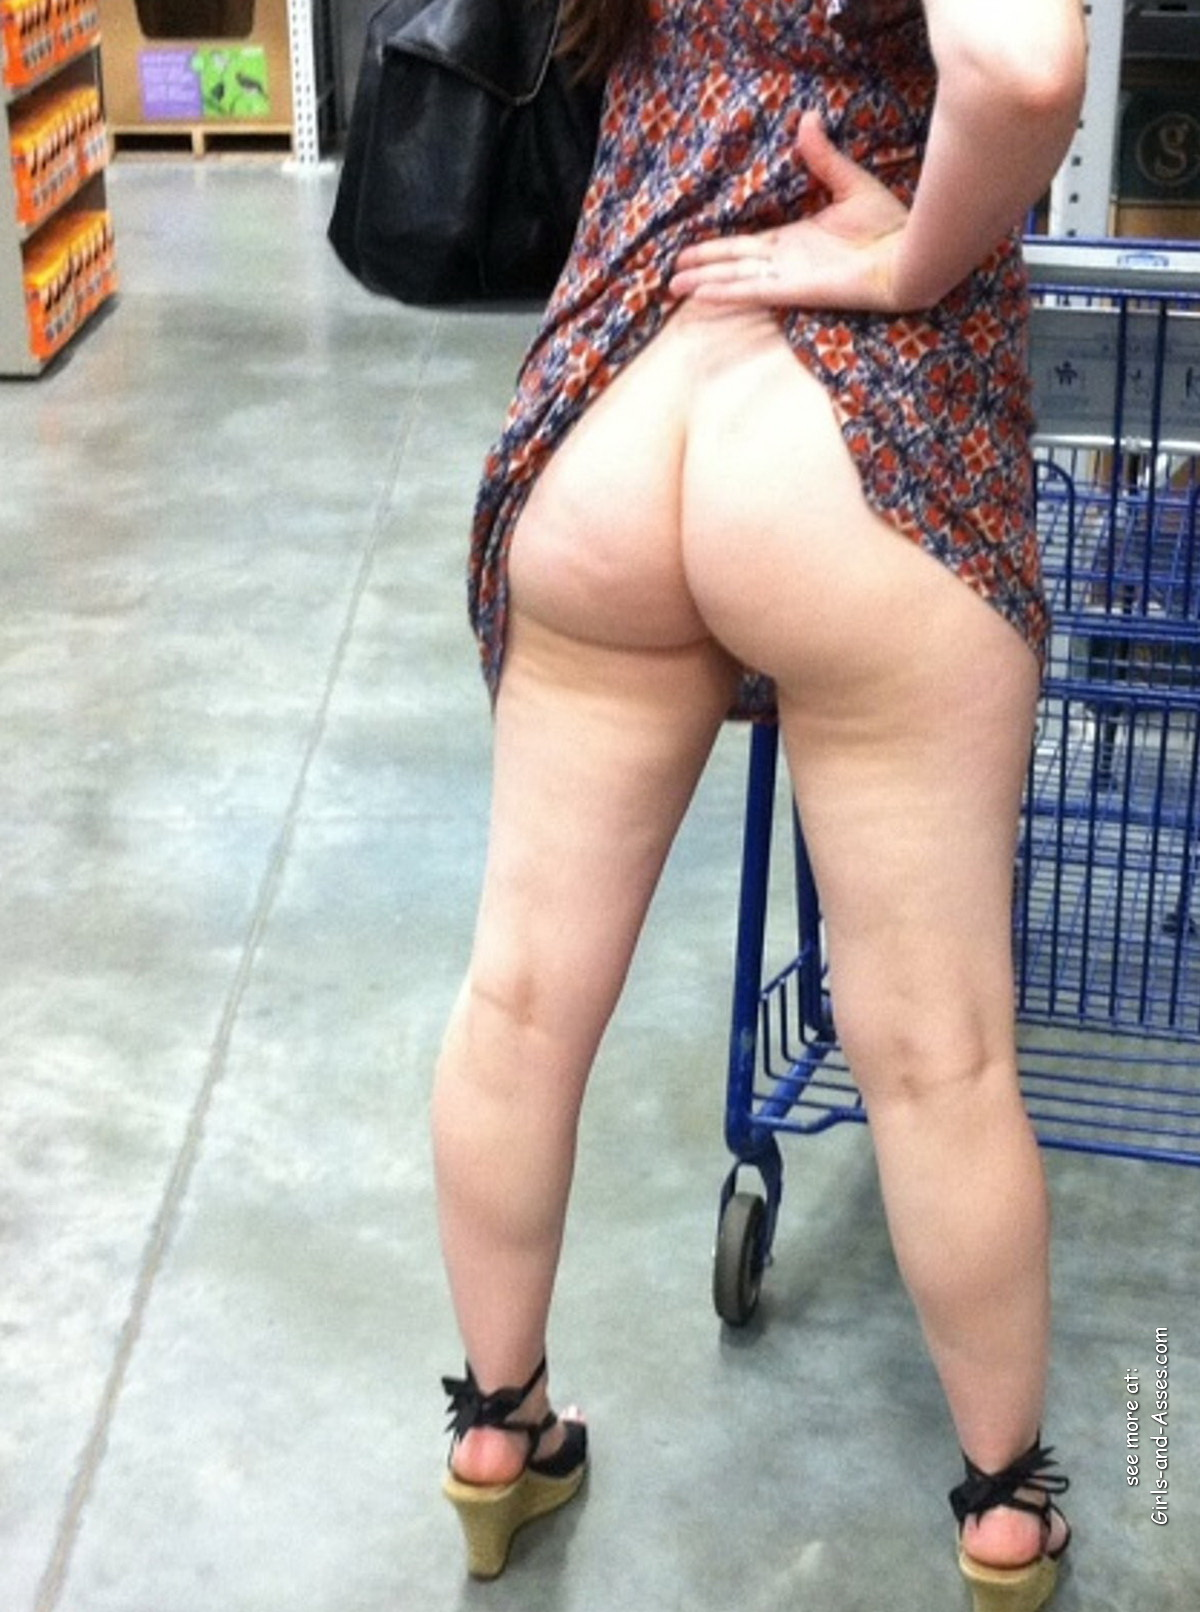 nude shopping photo girl shows ass in store 00724